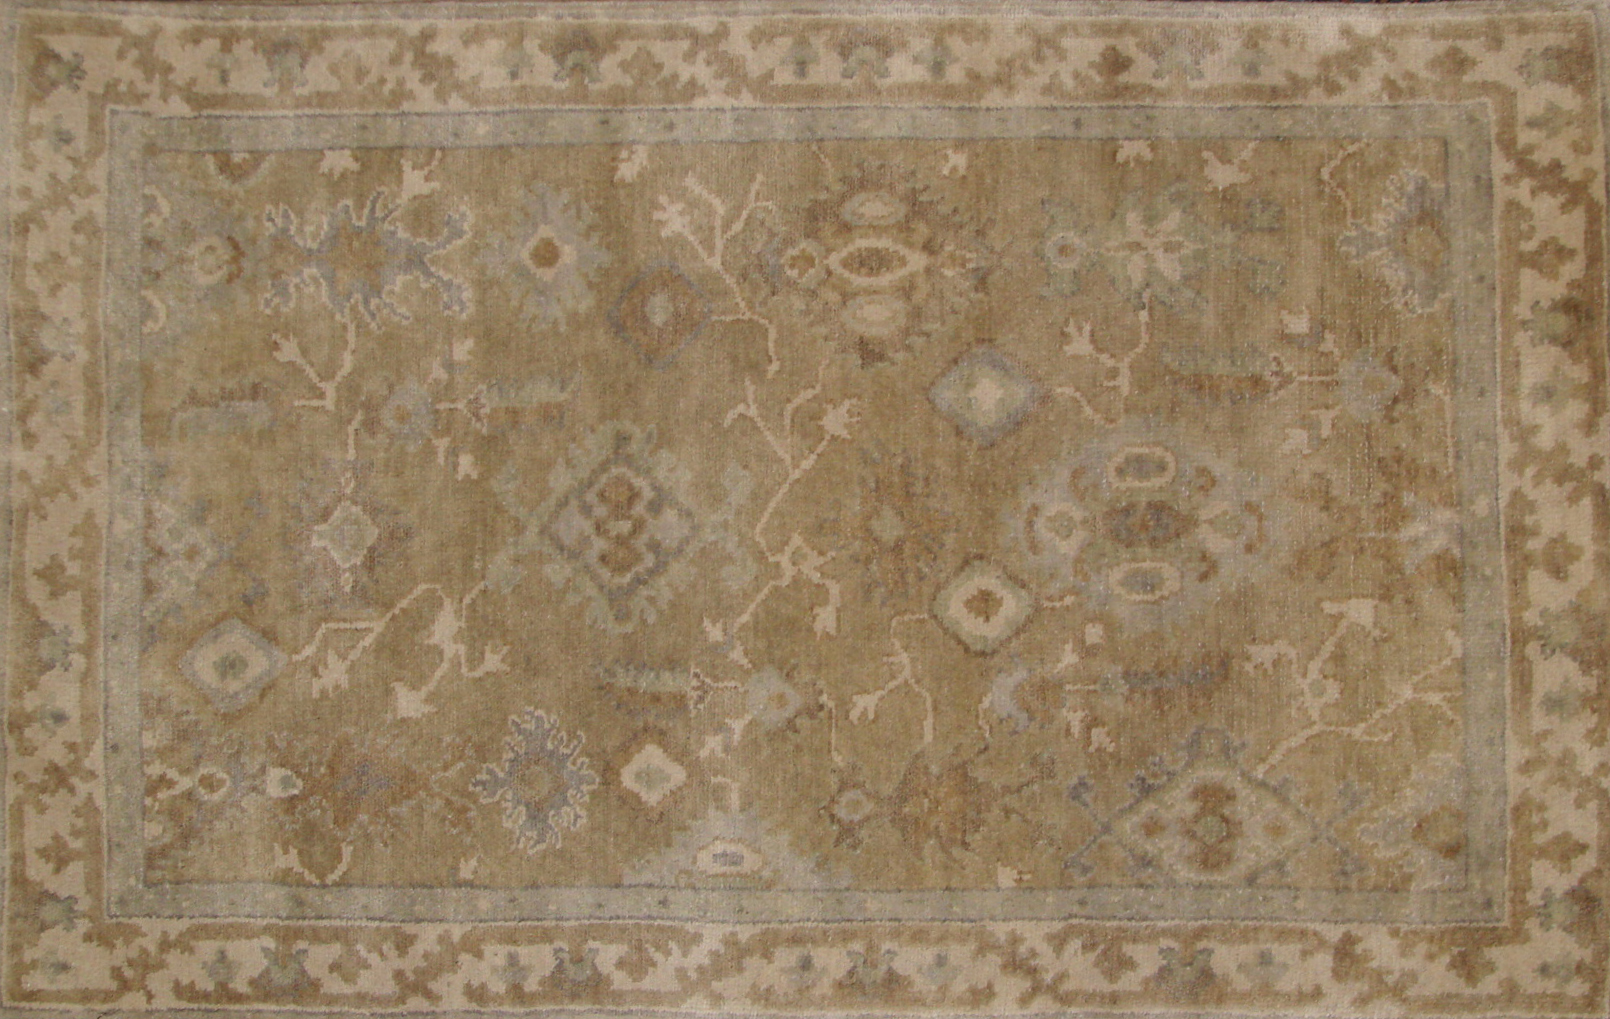 3x5 Oushak Hand Knotted Wool Area Rug - MR20694